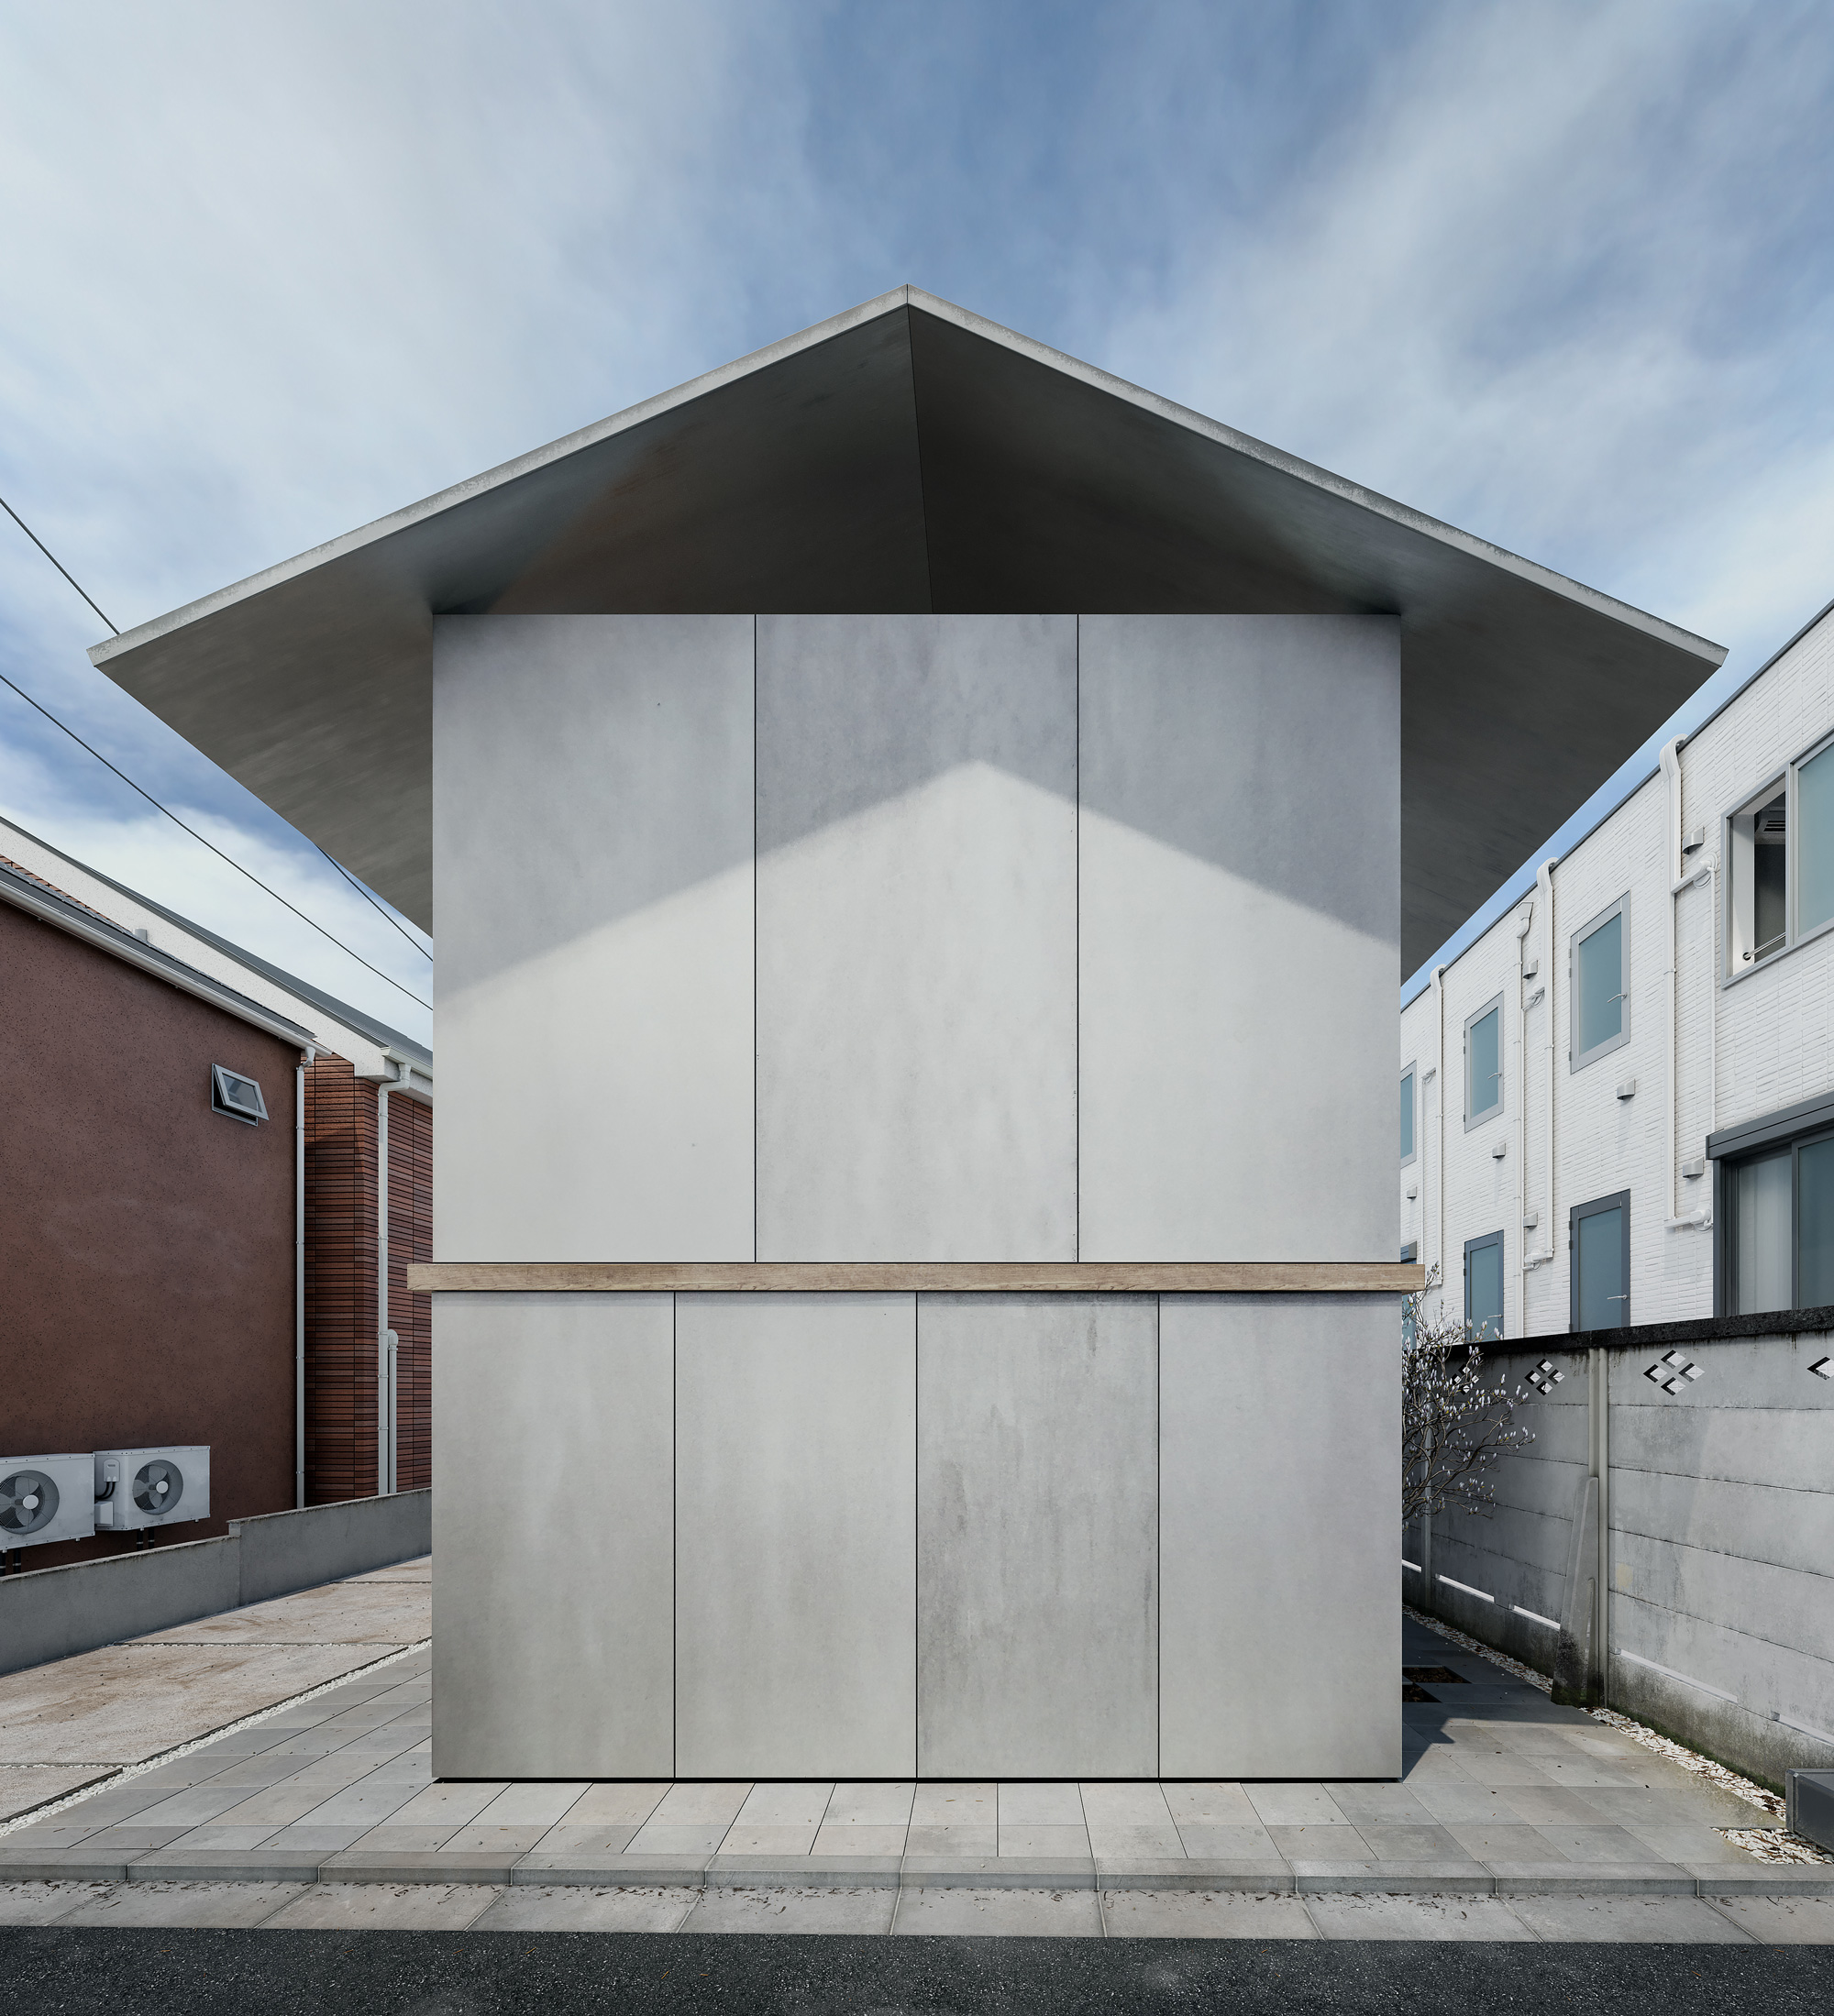 House-in-Kyodo-2000px